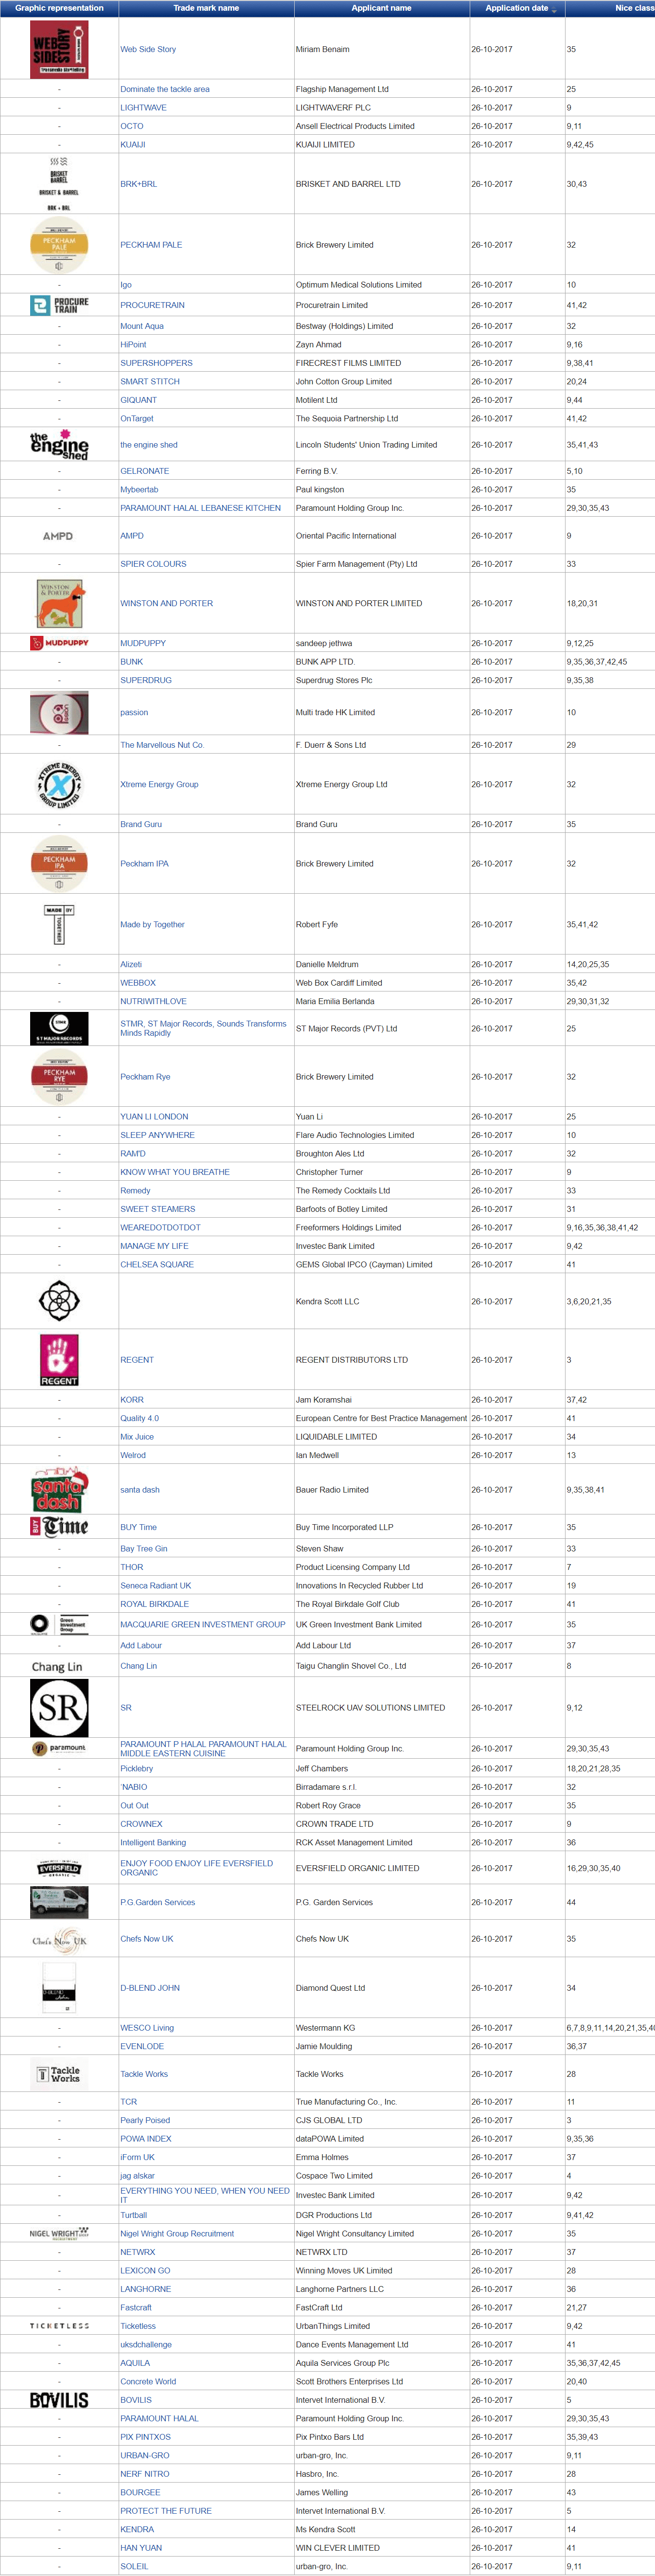 Trademark UK UK Trademark Applications Latest Filings with UK Patents Office 26 October 2017 4 2